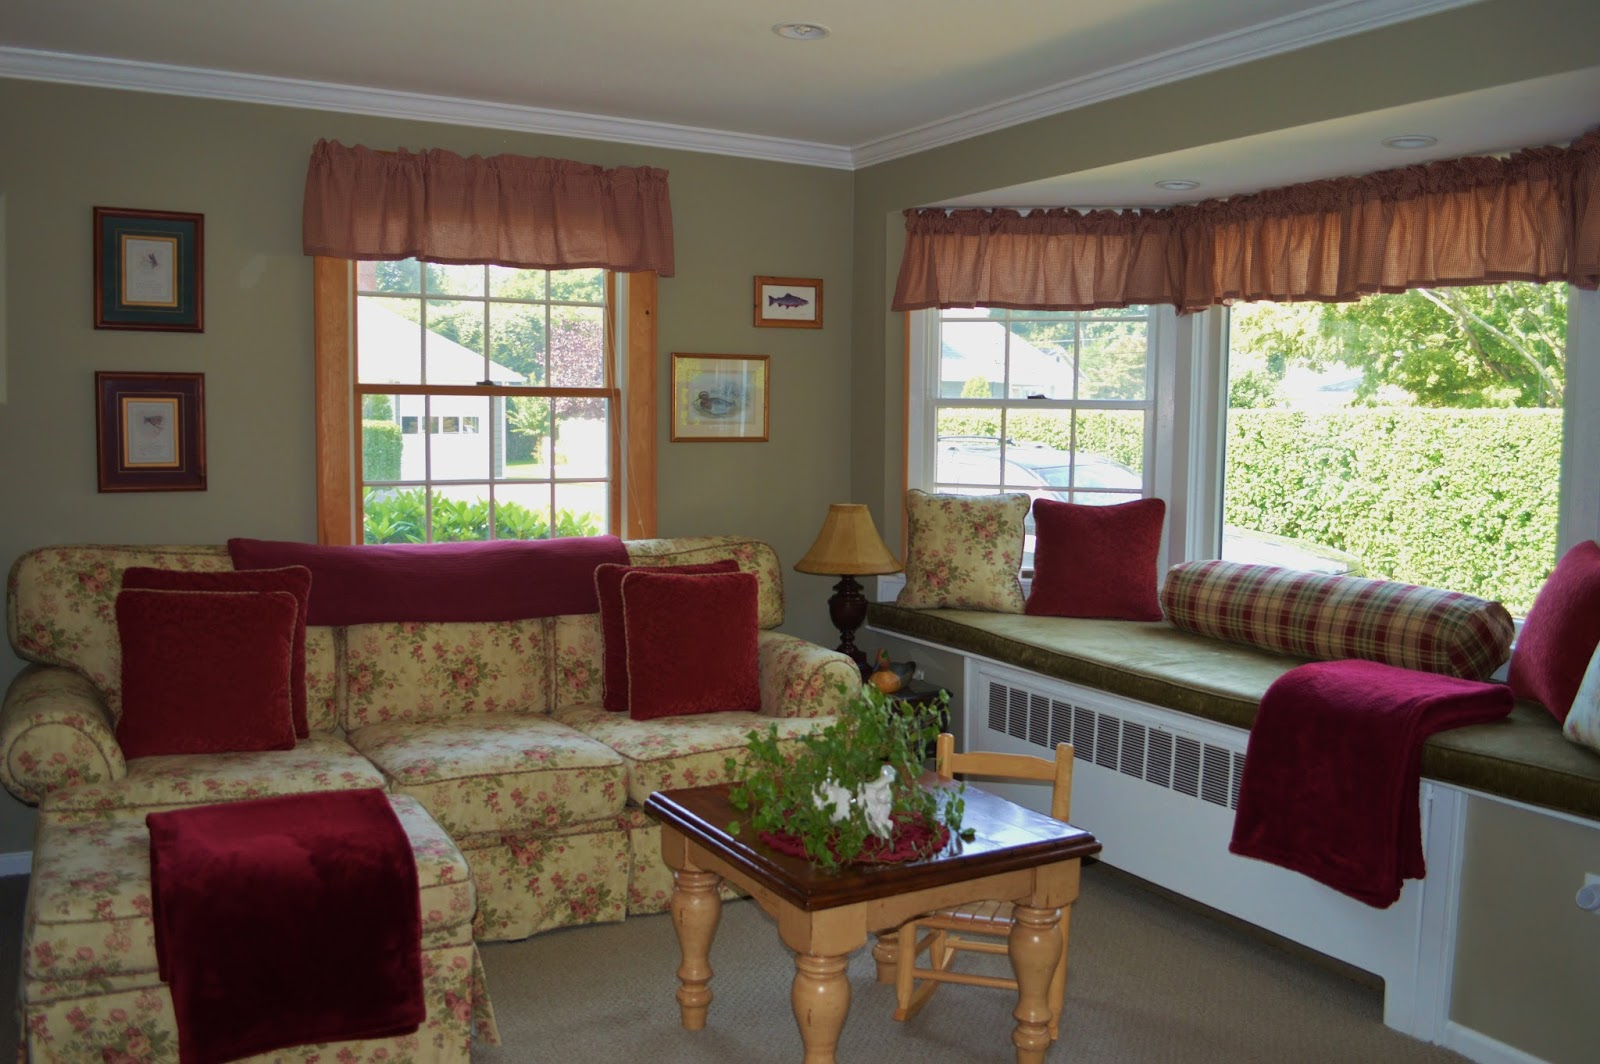 Cottage style family room exquisitely unremarkable for Cottage style family room